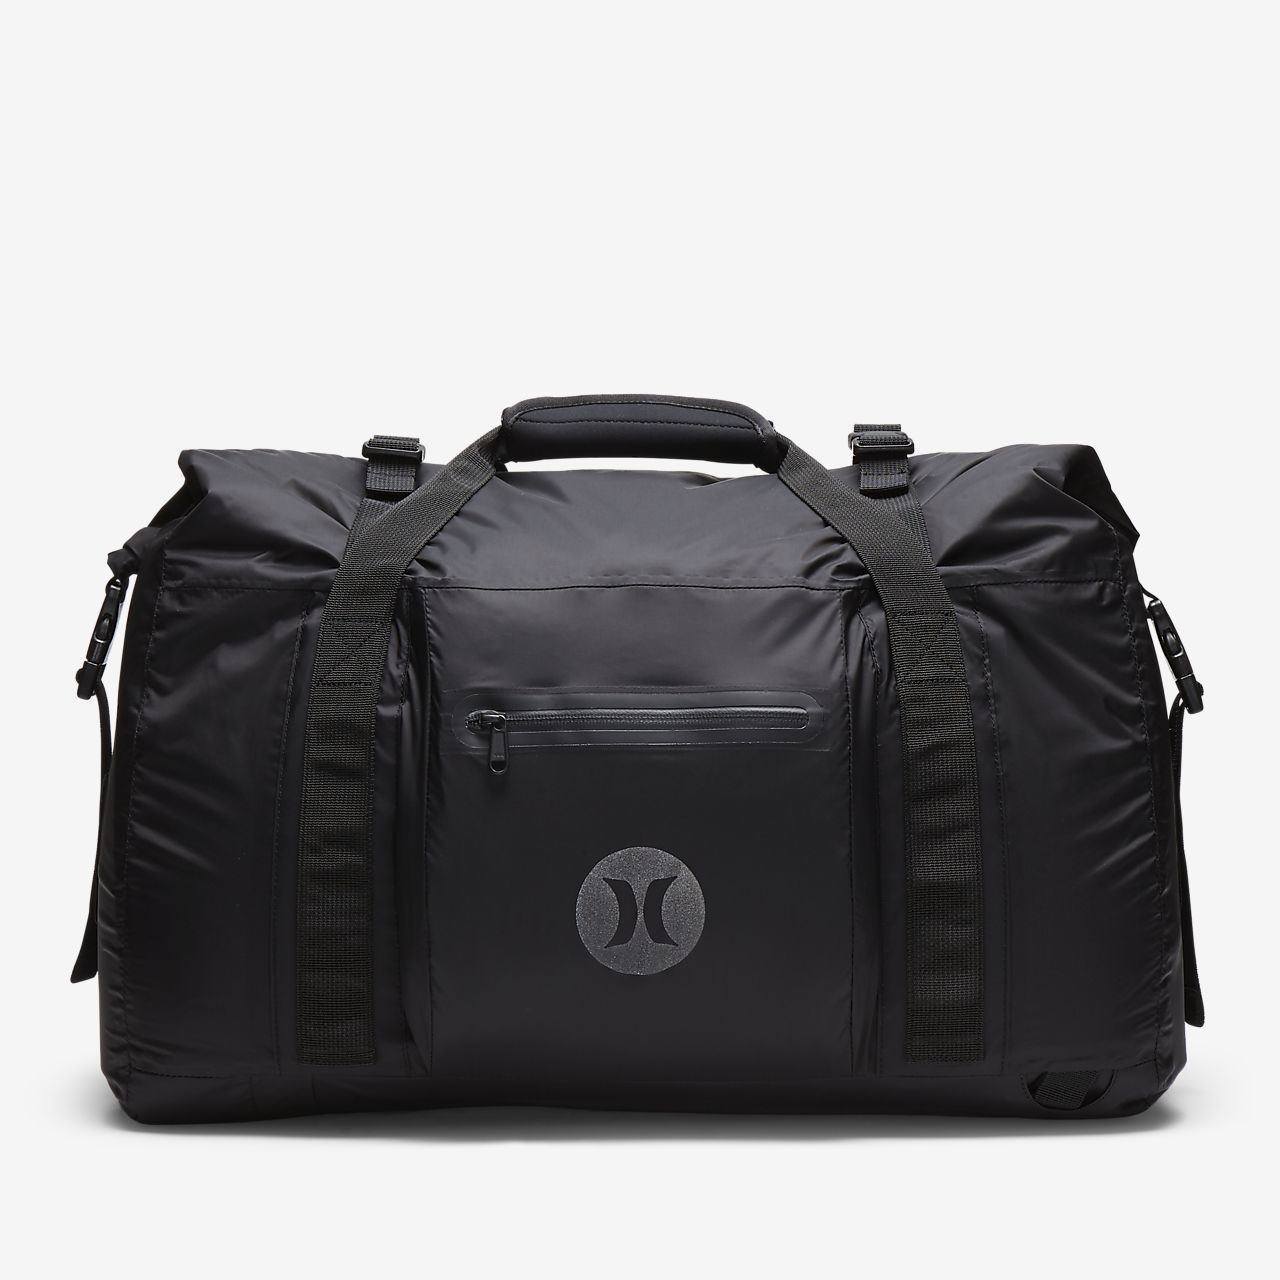 Hurley Wet and Dry Duffel Bag